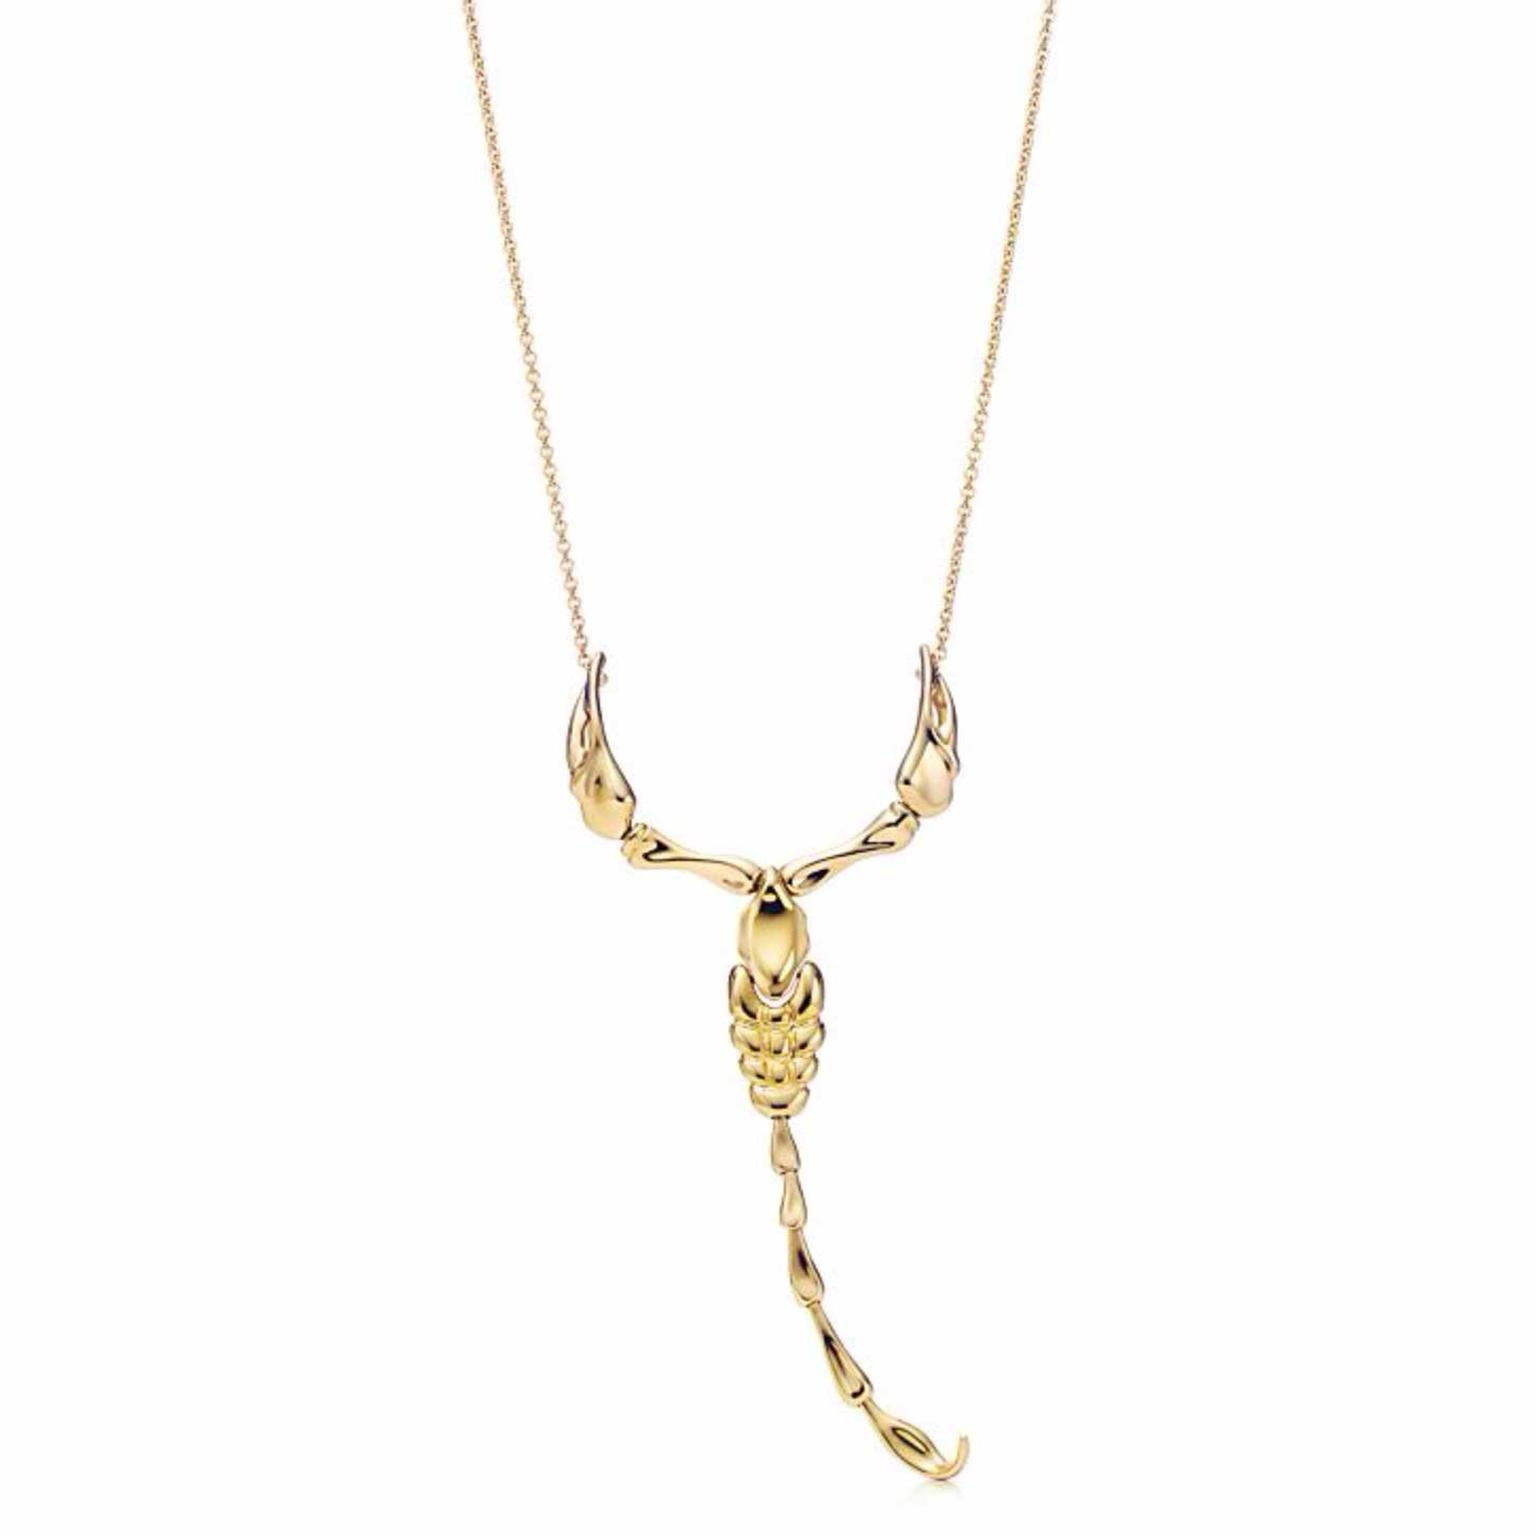 Elsa Peretti Scorpion pendant necklace in yellow gold